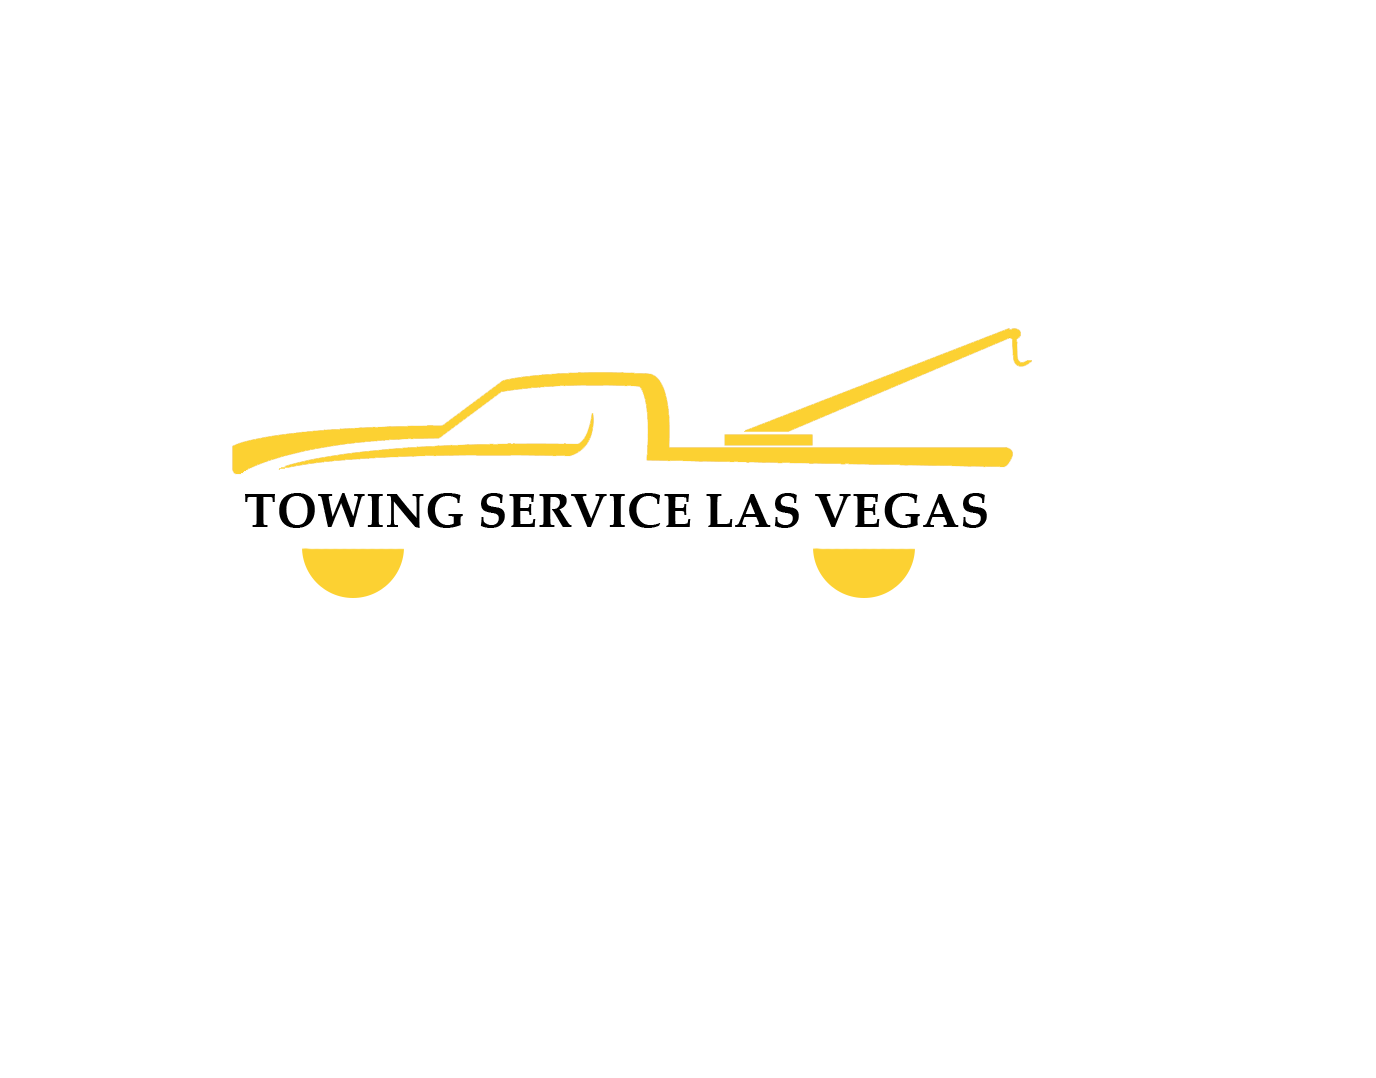 Towing Service Las Vegas